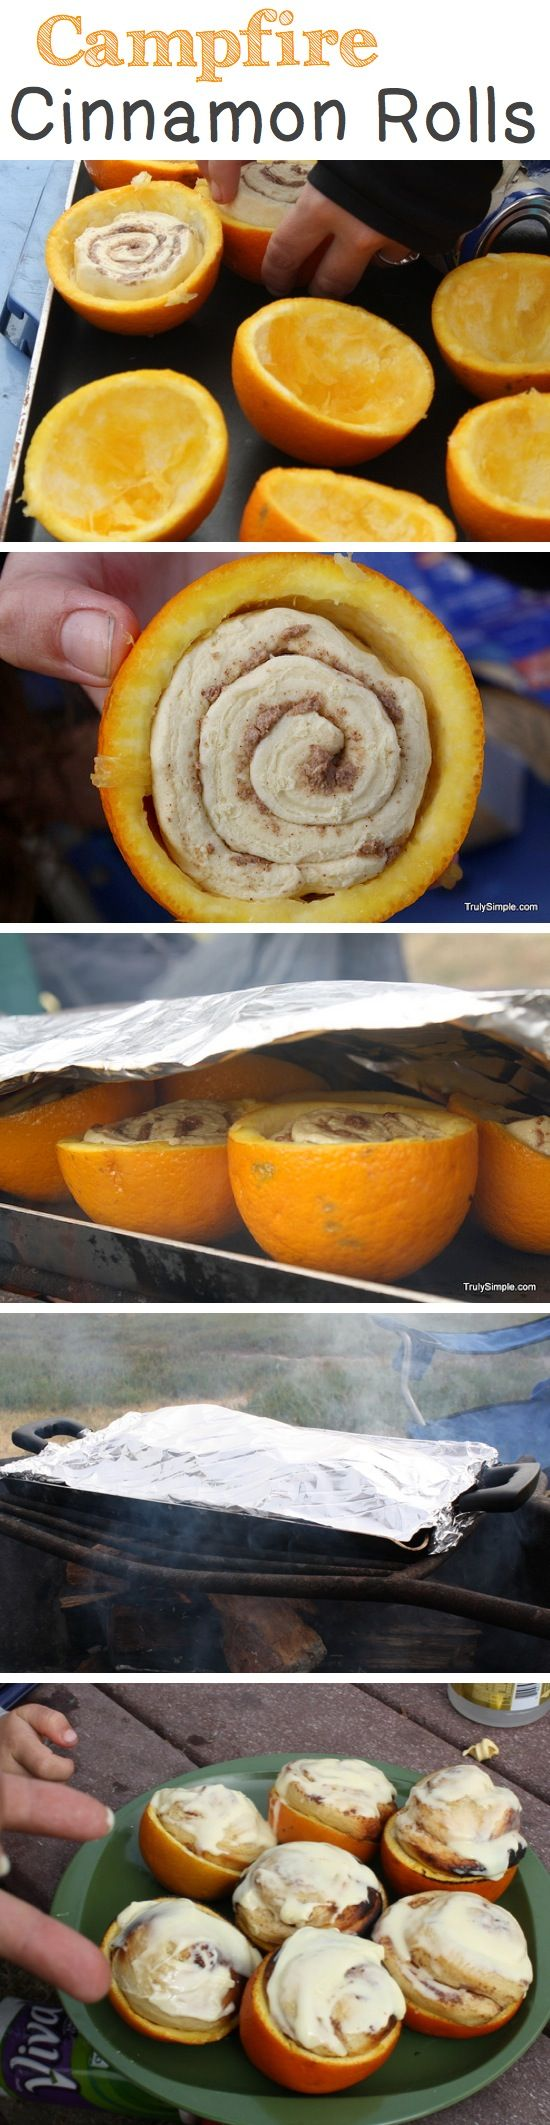 Campfire Cinnamon Rolls   Orange flavored cinnamon rolls baked over a campfire in hollowed out oranges!